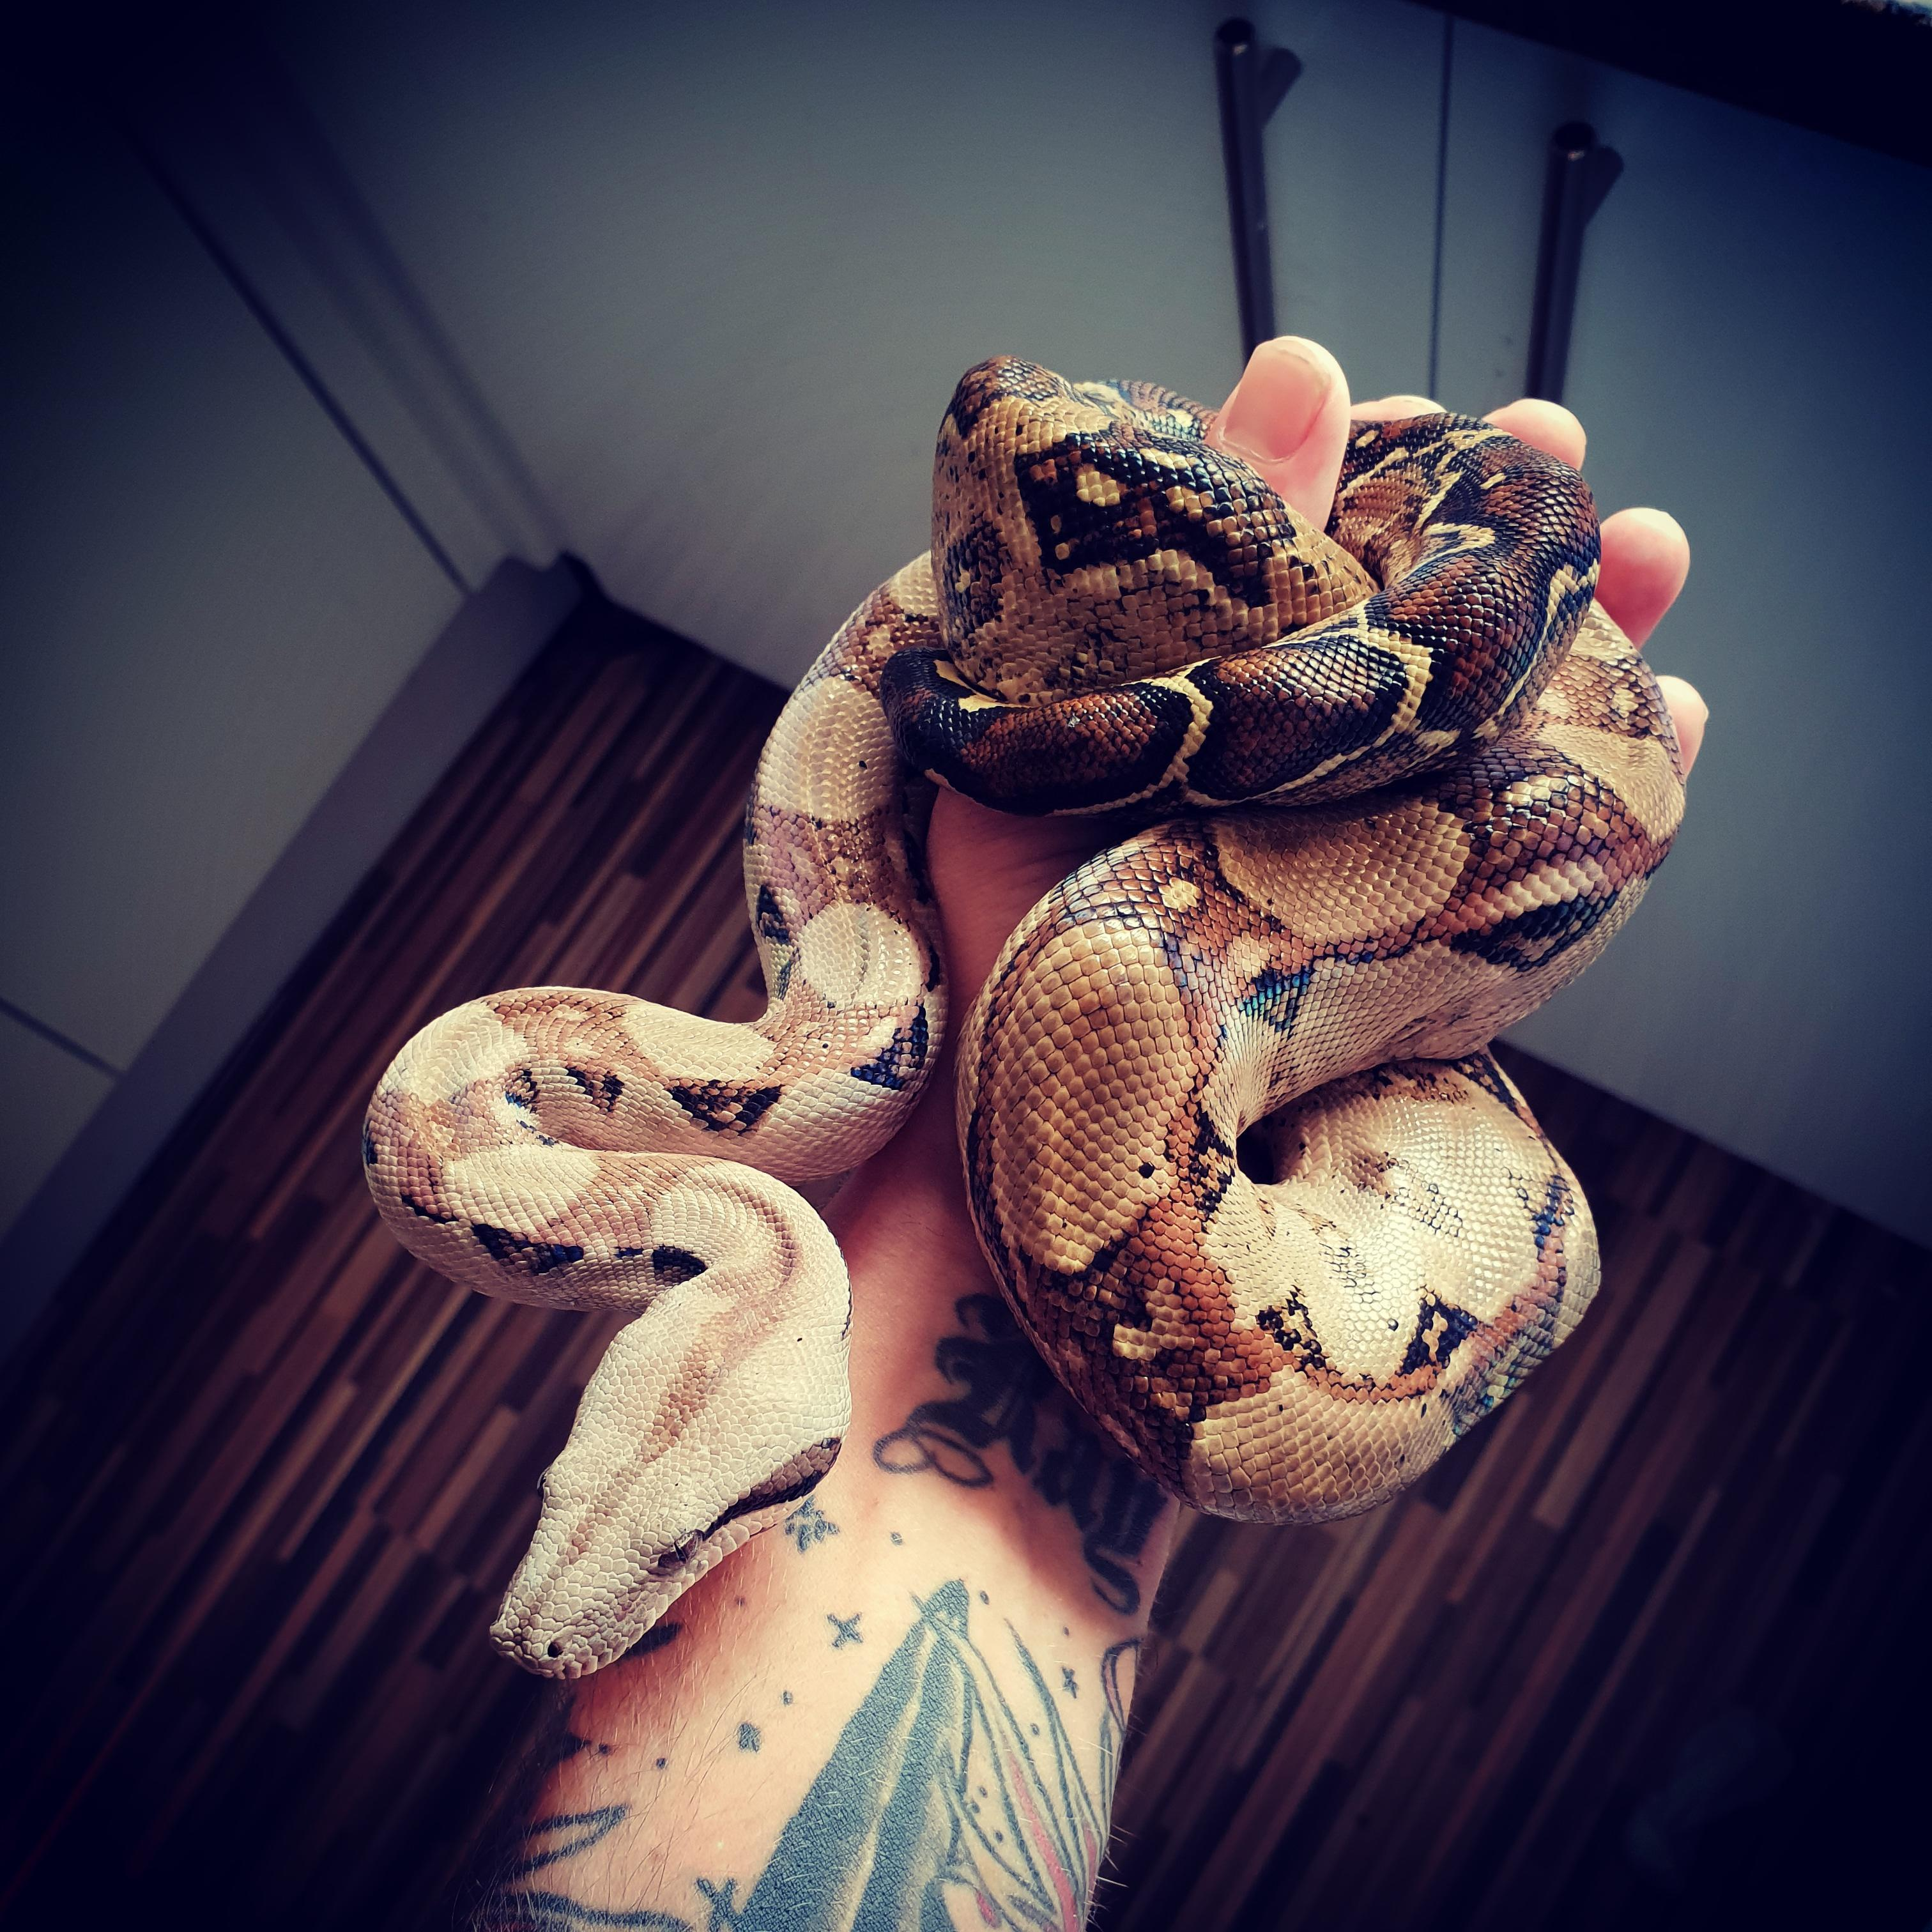 2x royal pythons and 2x boa constrictors all with their own